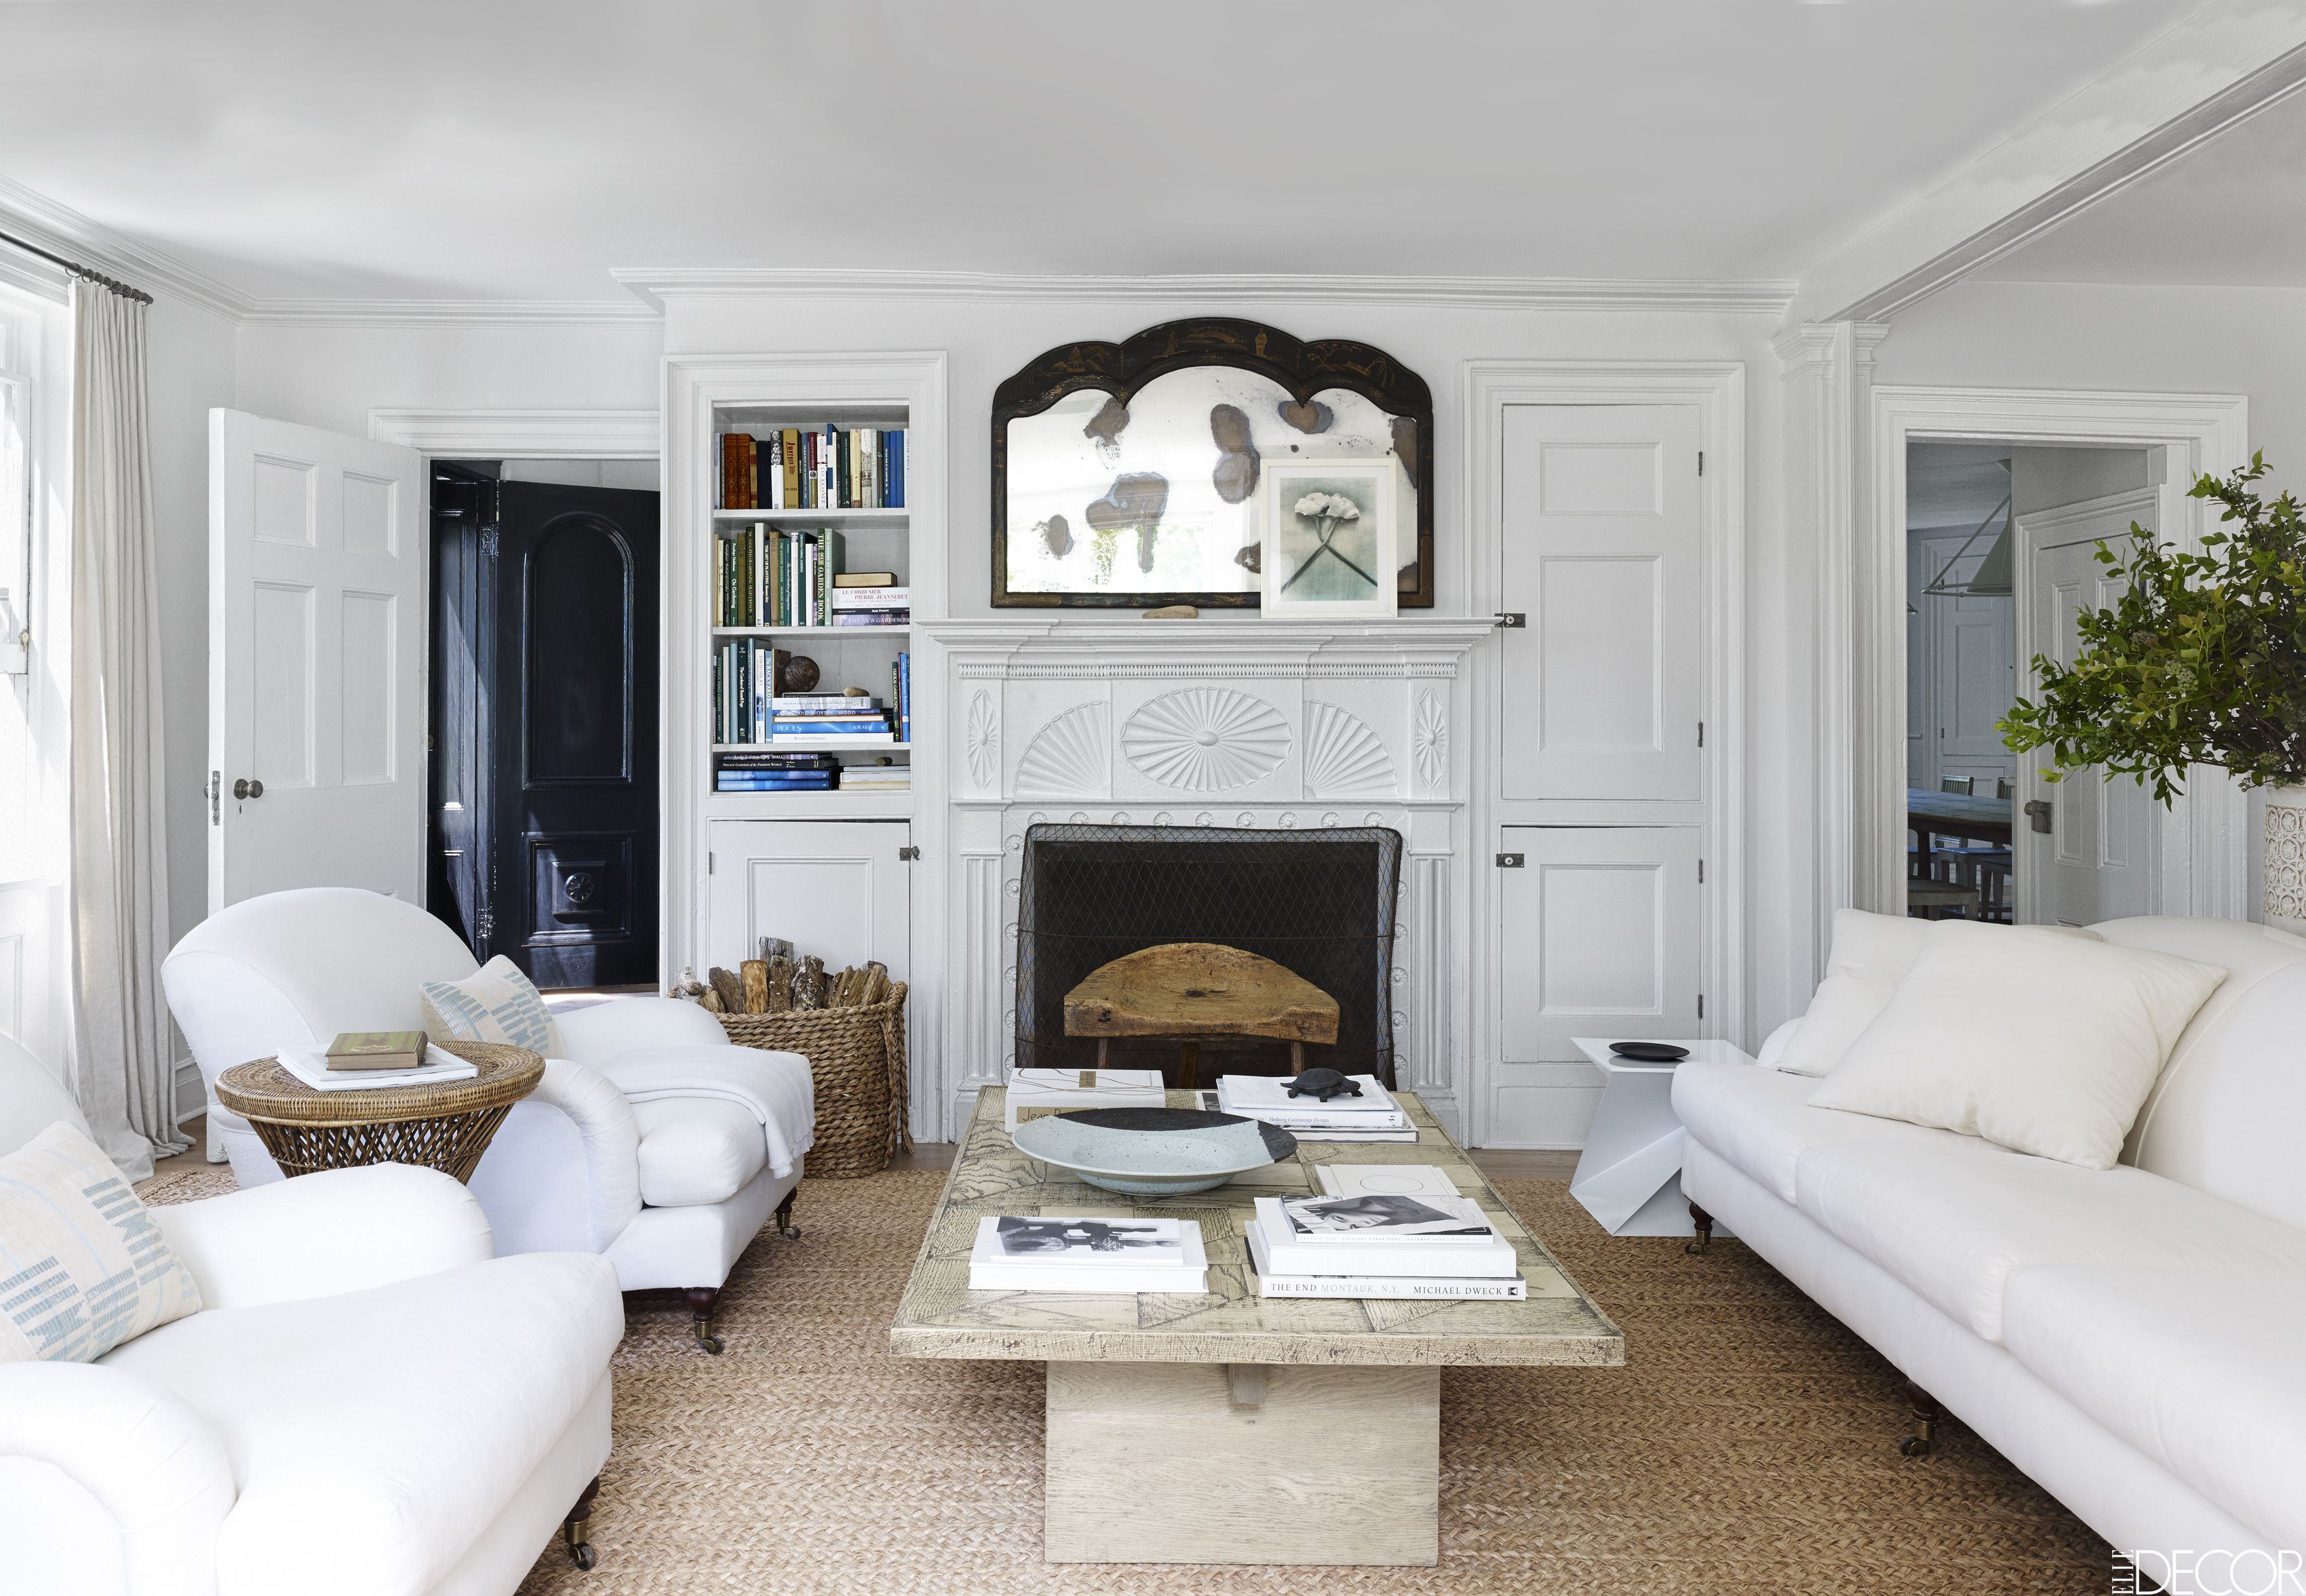 Living Rooms With White Sofas - home decor photos gallery